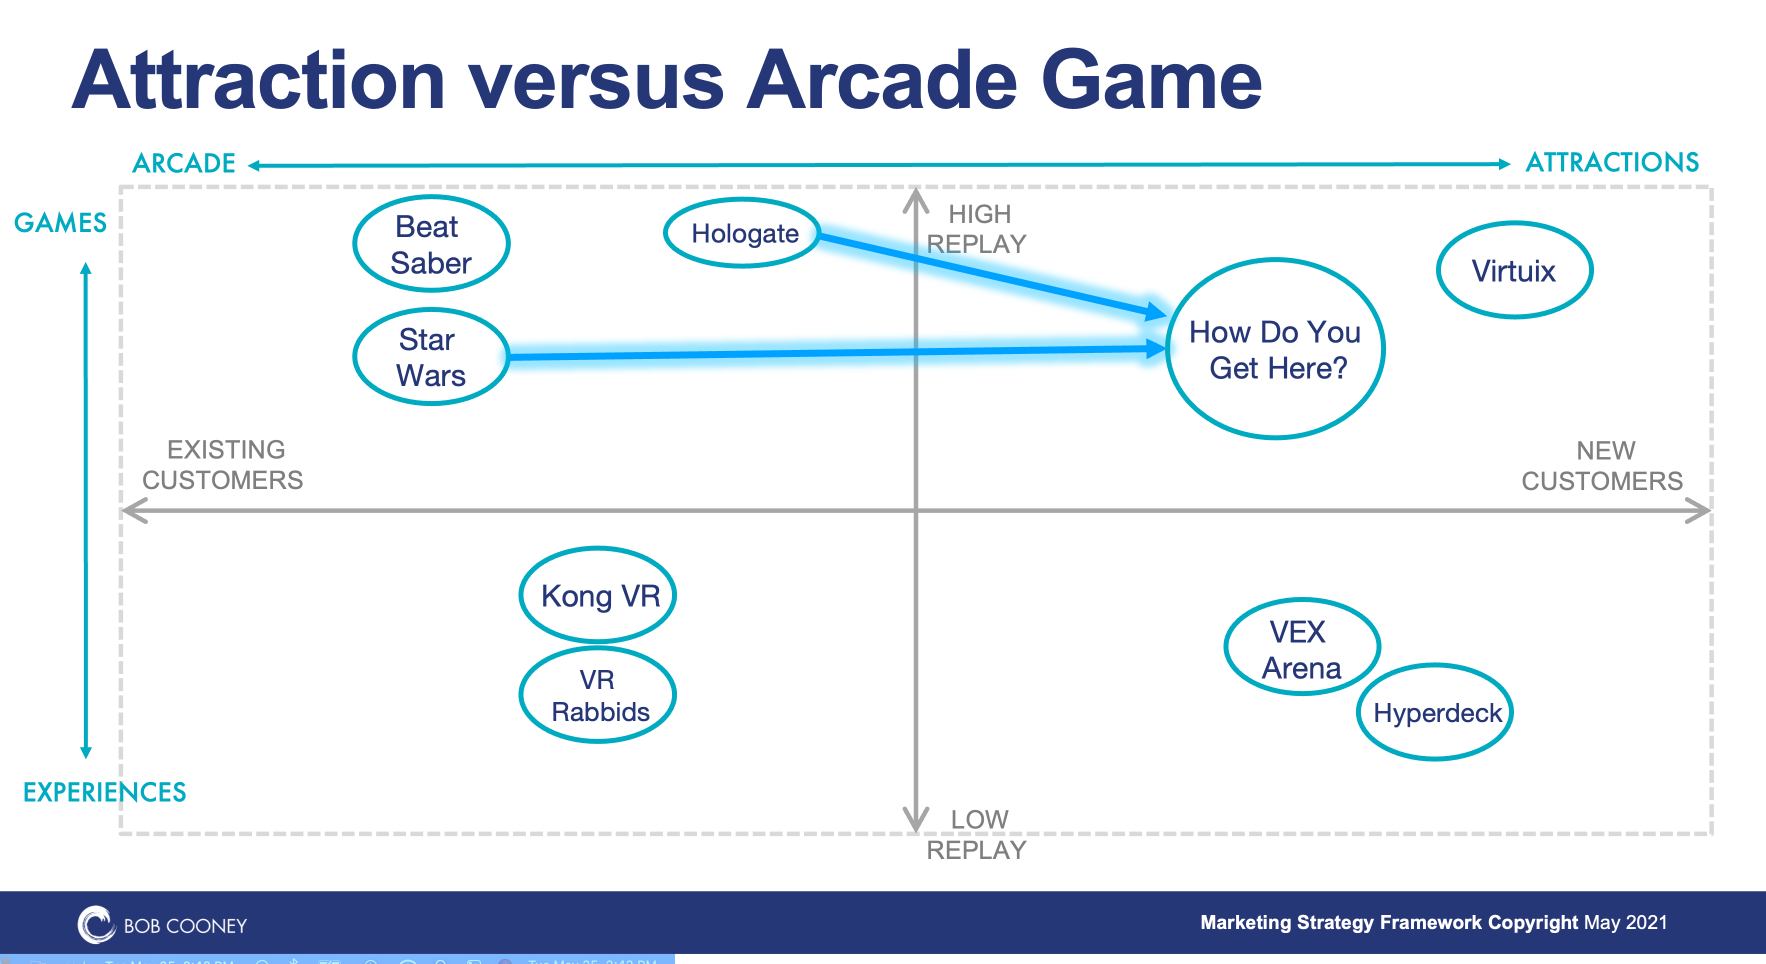 How to Make More Money from VR Arcade Games